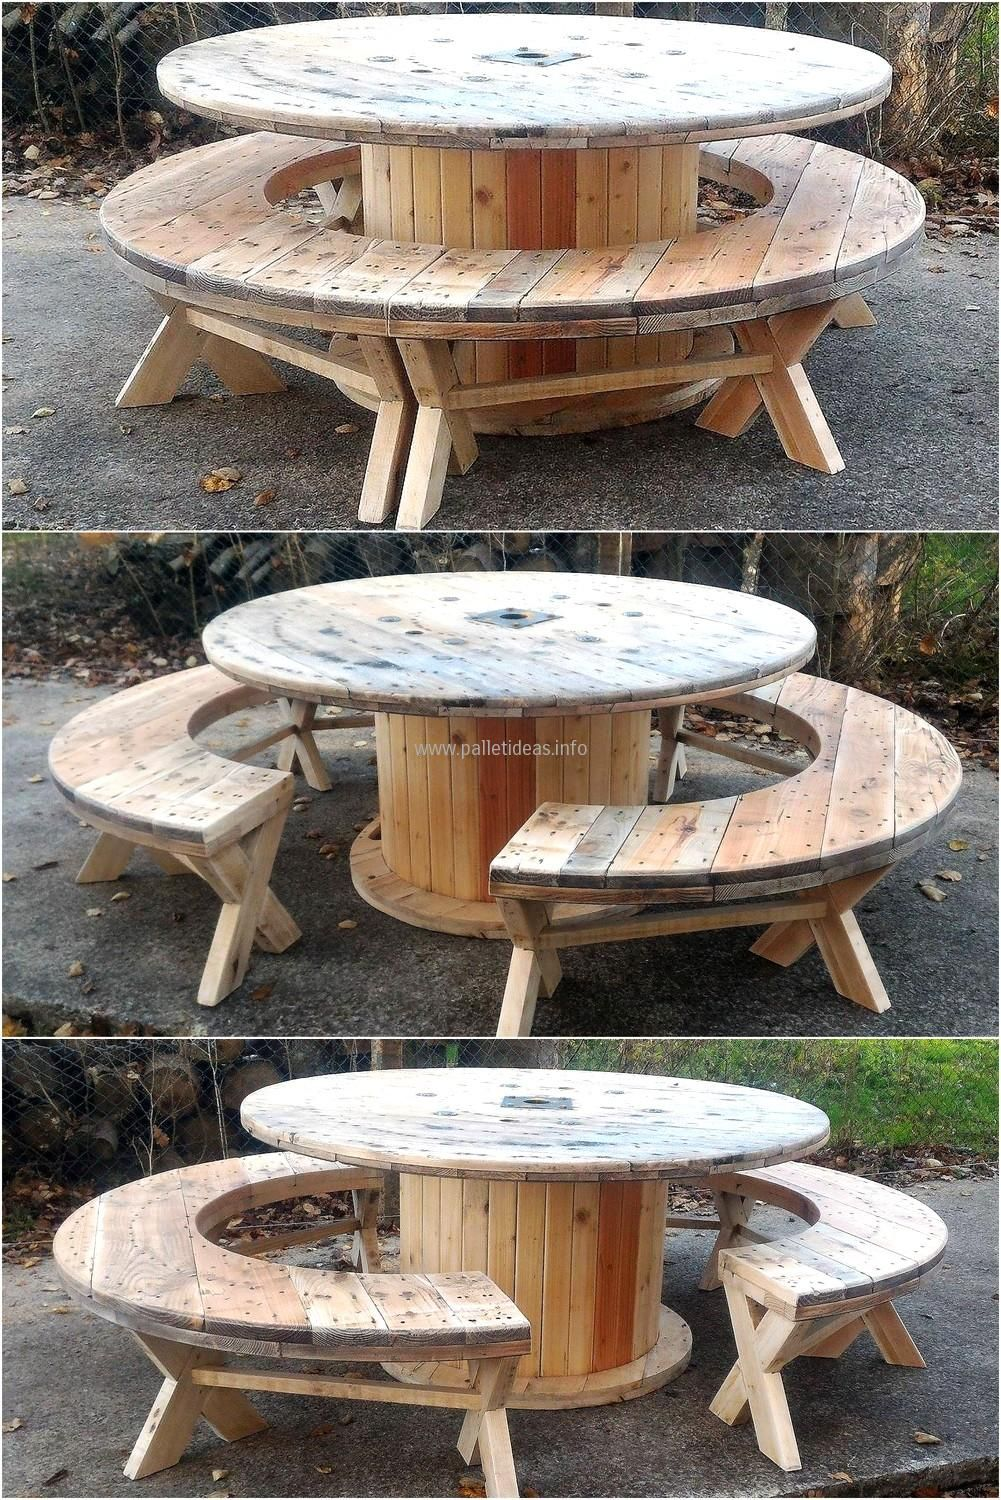 recycled-pallet-cable-reel-patio-furniture | Cianet | Idées ...